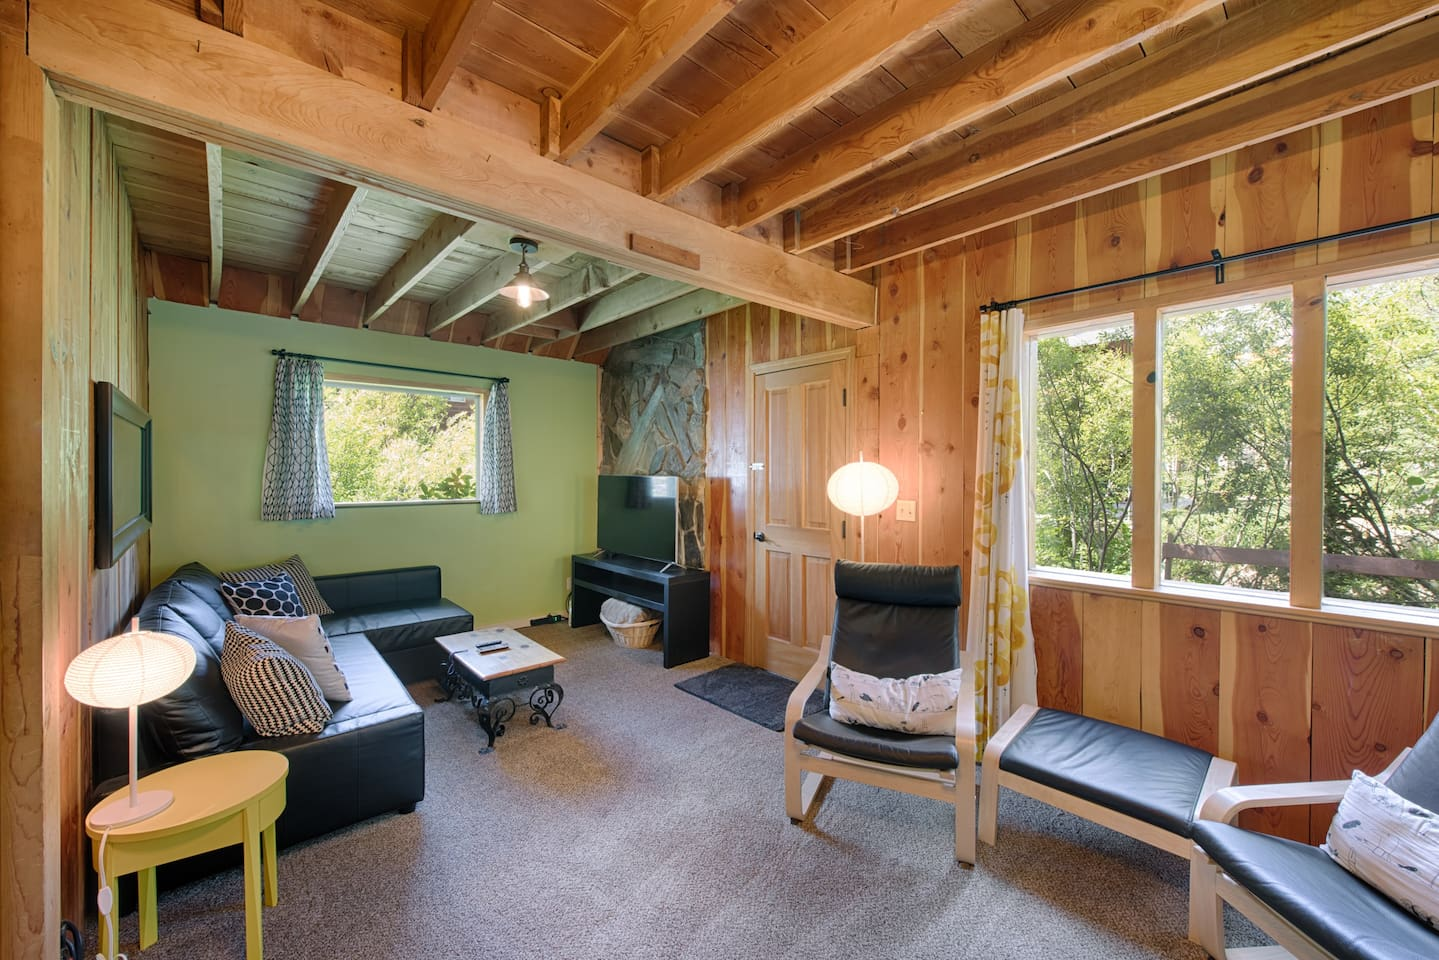 Lemonwood Cabin is waiting for you! Come enjoy this cozy, charming getaway. Near the lake and has its own hot tub. Tervetuloa! Welcome in Finnish language.